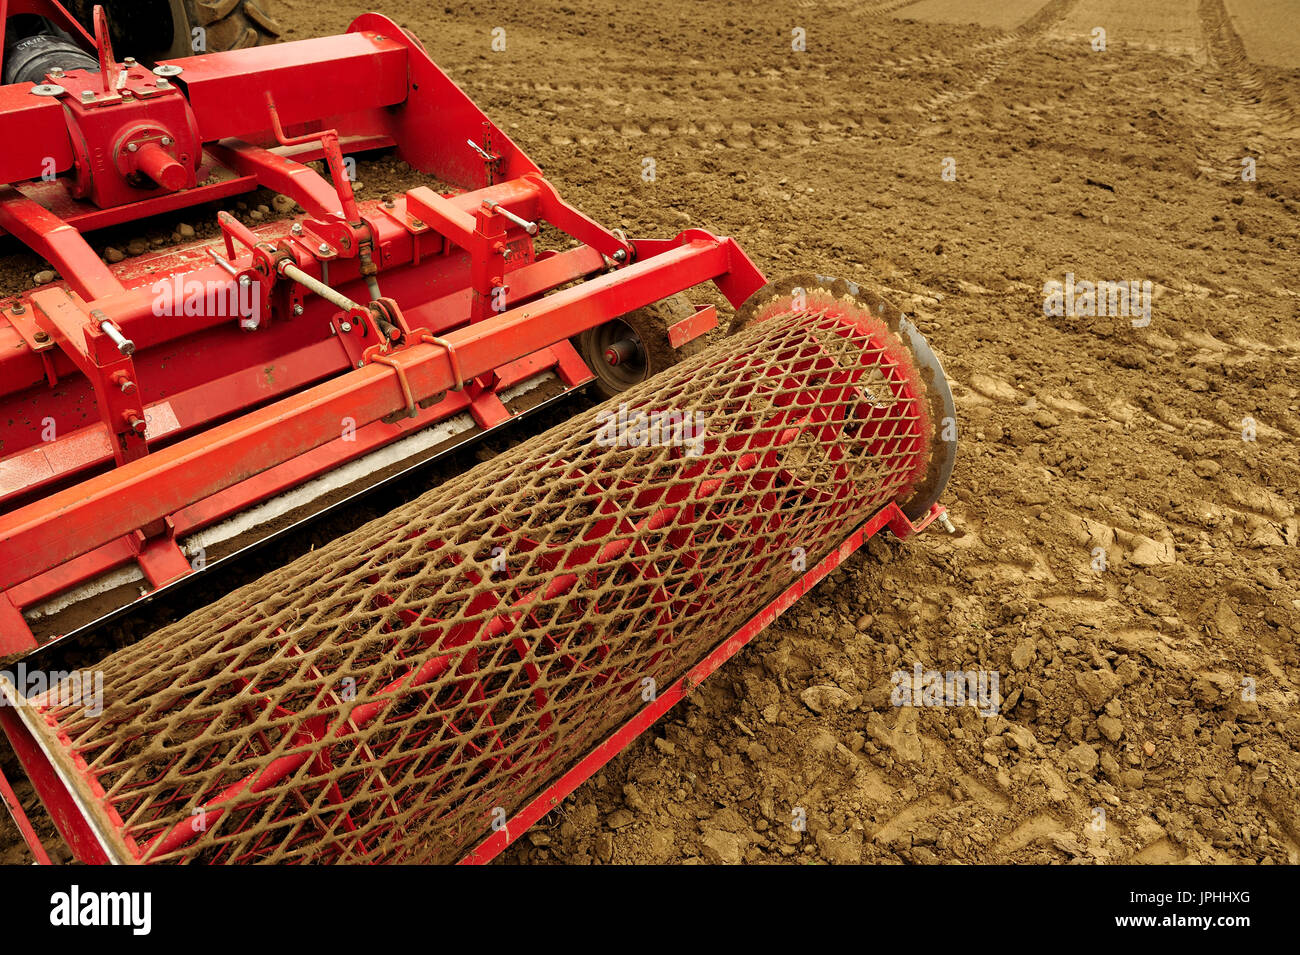 spring, work, field, sowing, seeds, agroculture, equipment, mechanized, cultivation, work, job, weather, tractor, - Stock Image